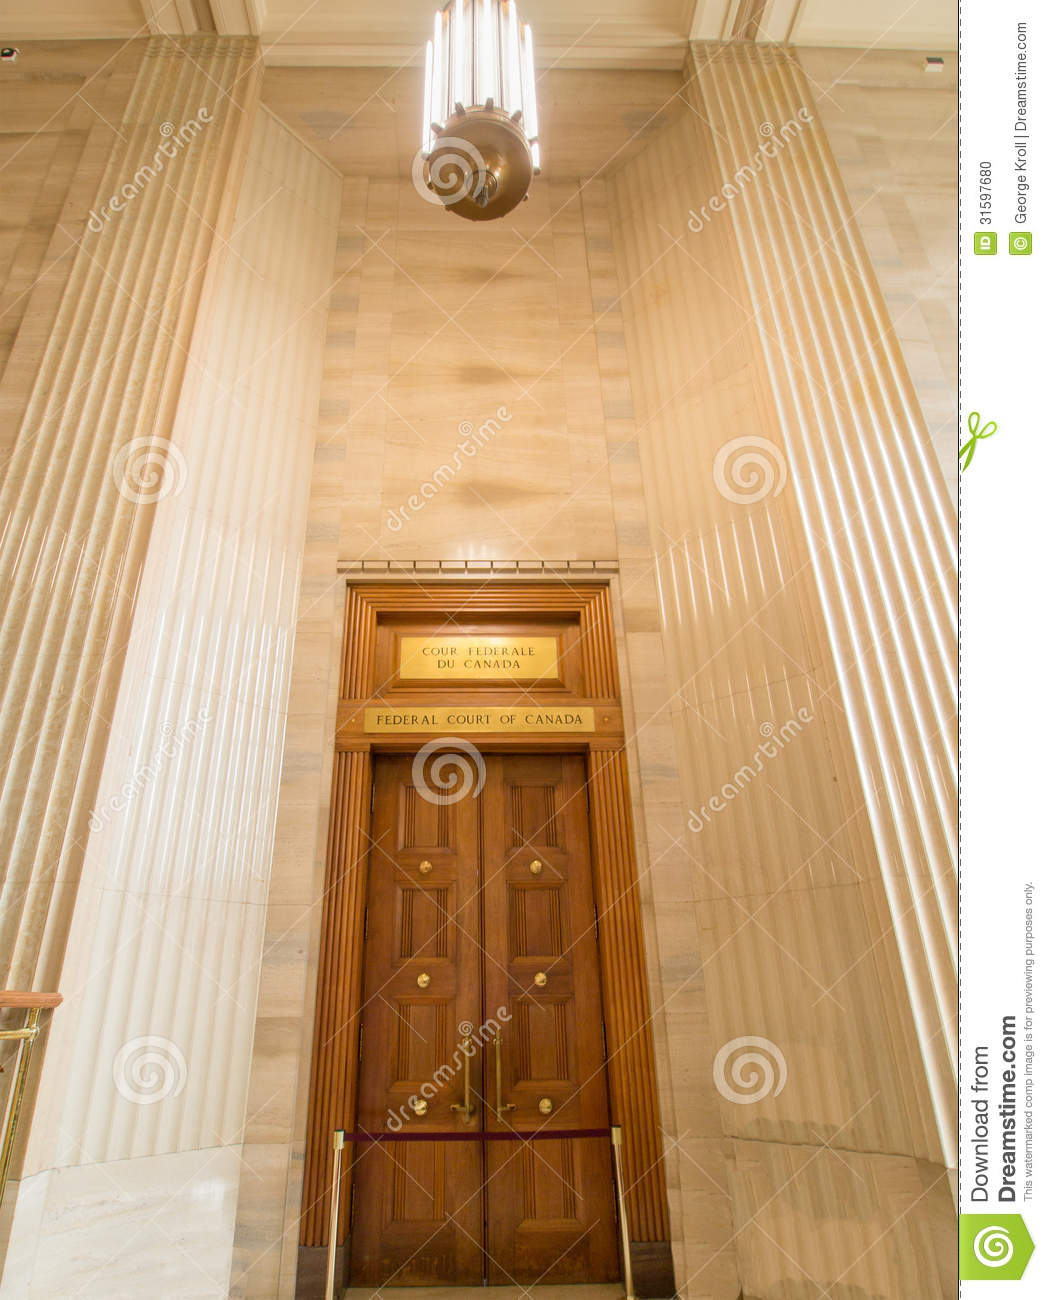 1300 #462008 The Entrance Door To The Federal Court Of Canada Next To Parliament  pic Entry Doors Canada 45711048